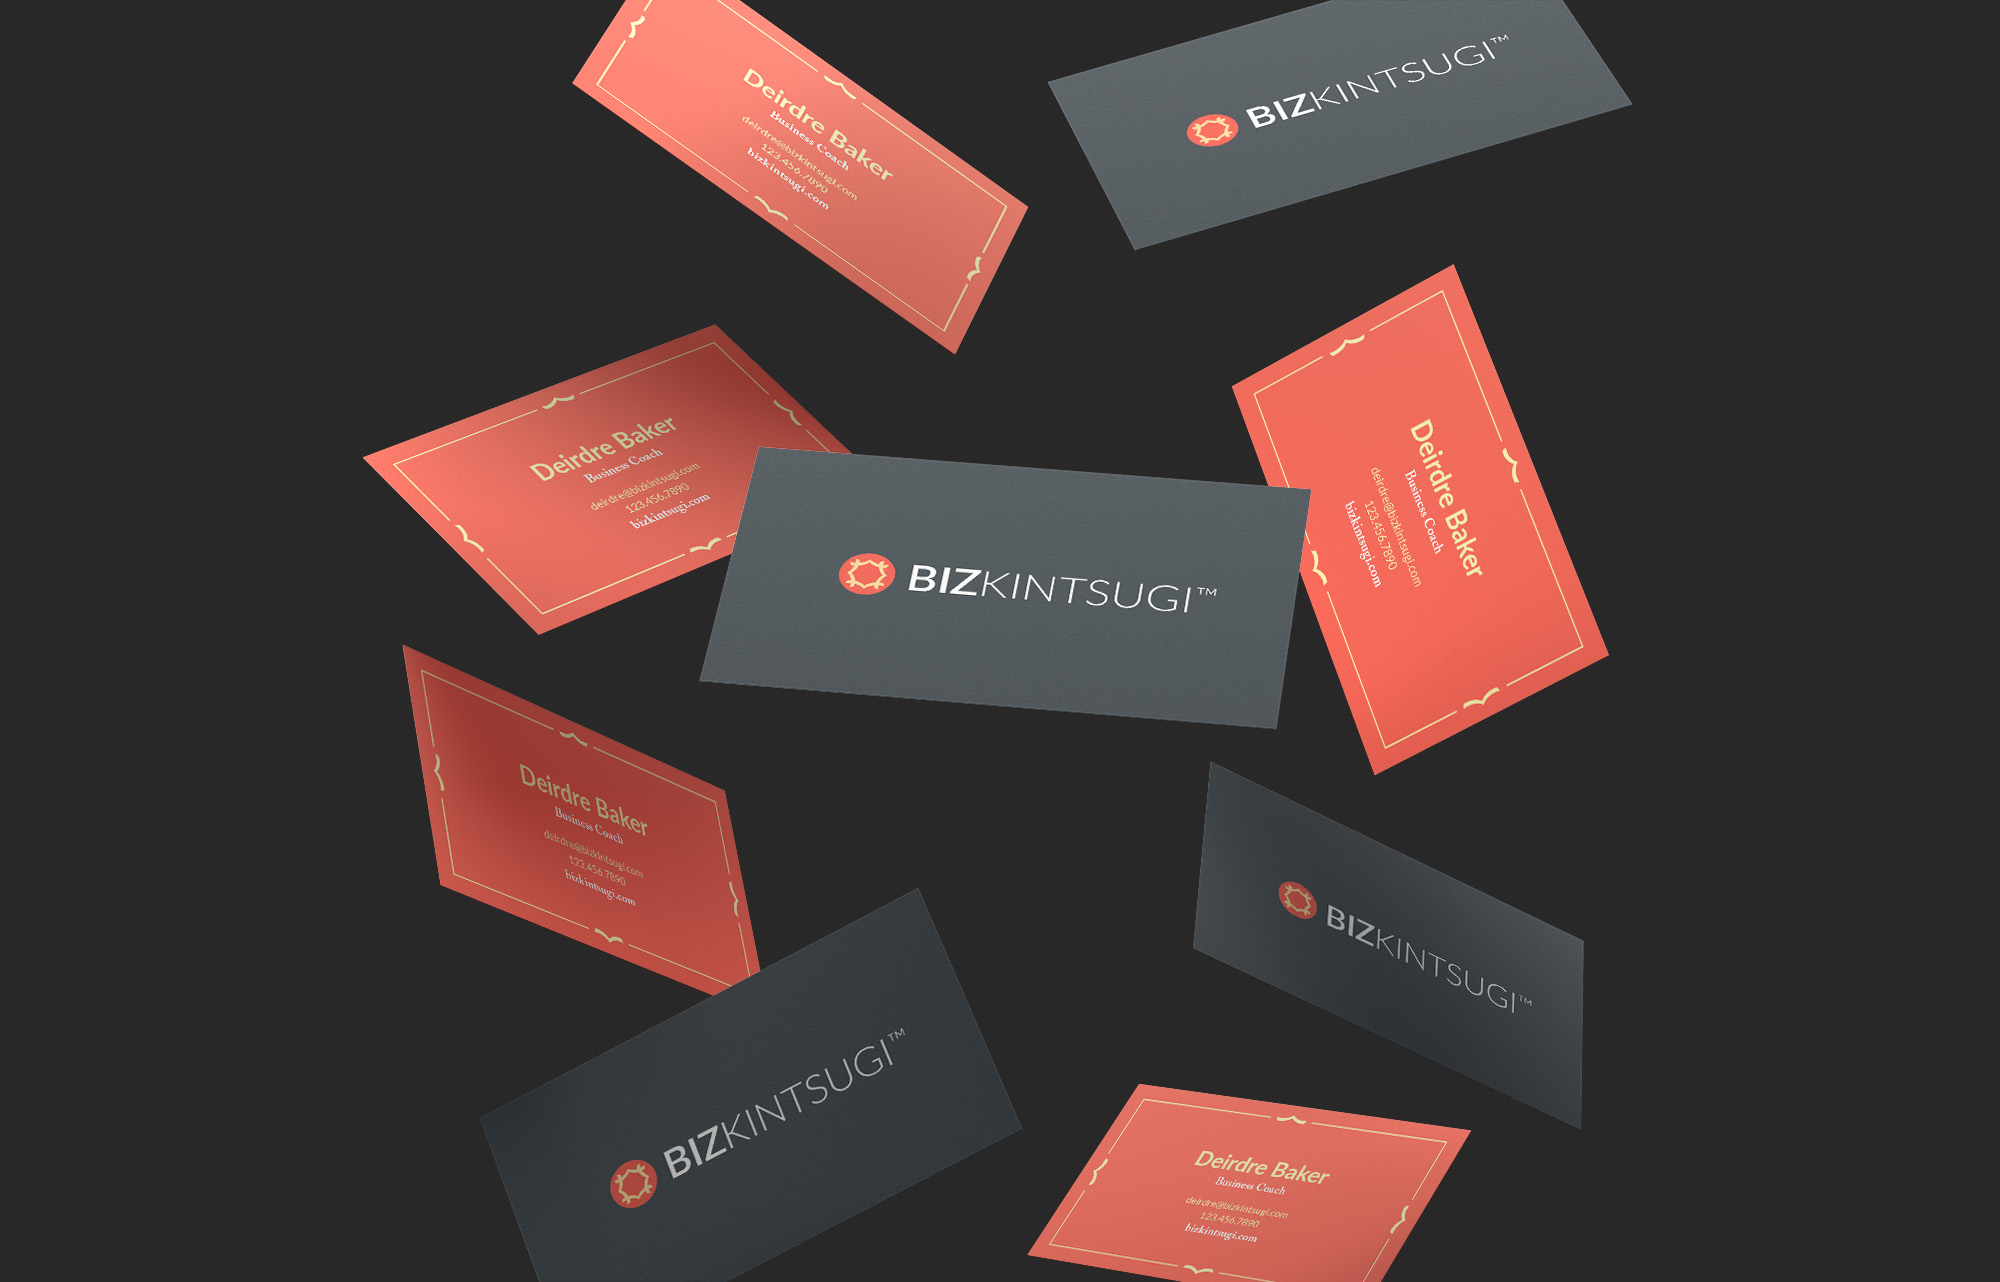 New Brand Identity For Women-Focused Business Coach Design by Creative Chameleon Studio